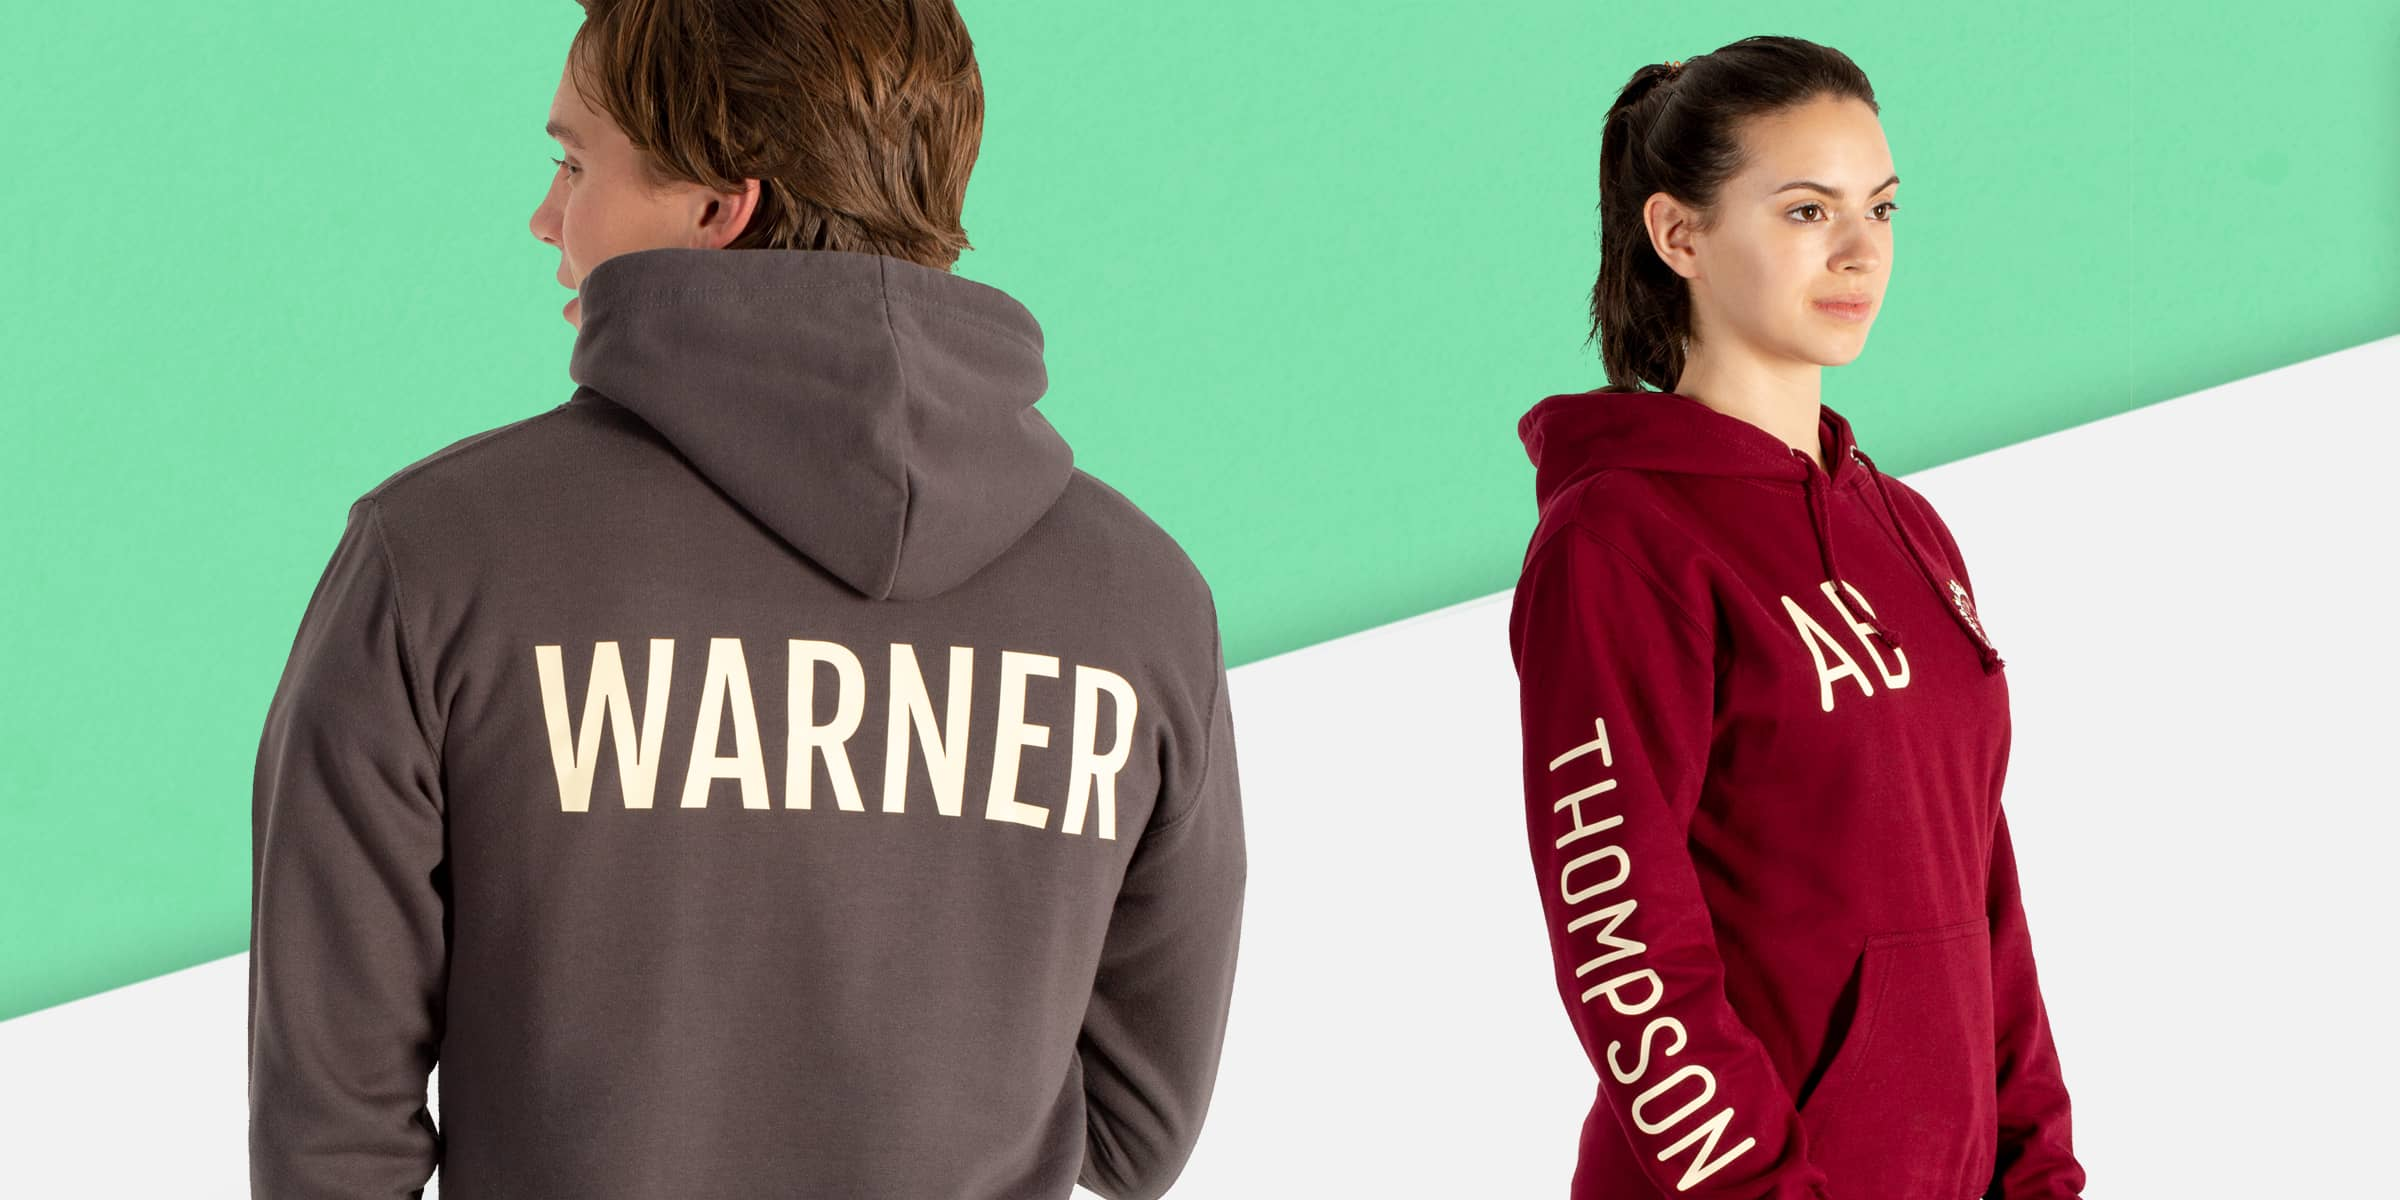 School trip hoodies and sweatshirts with names, nicknames, initials and personalisation